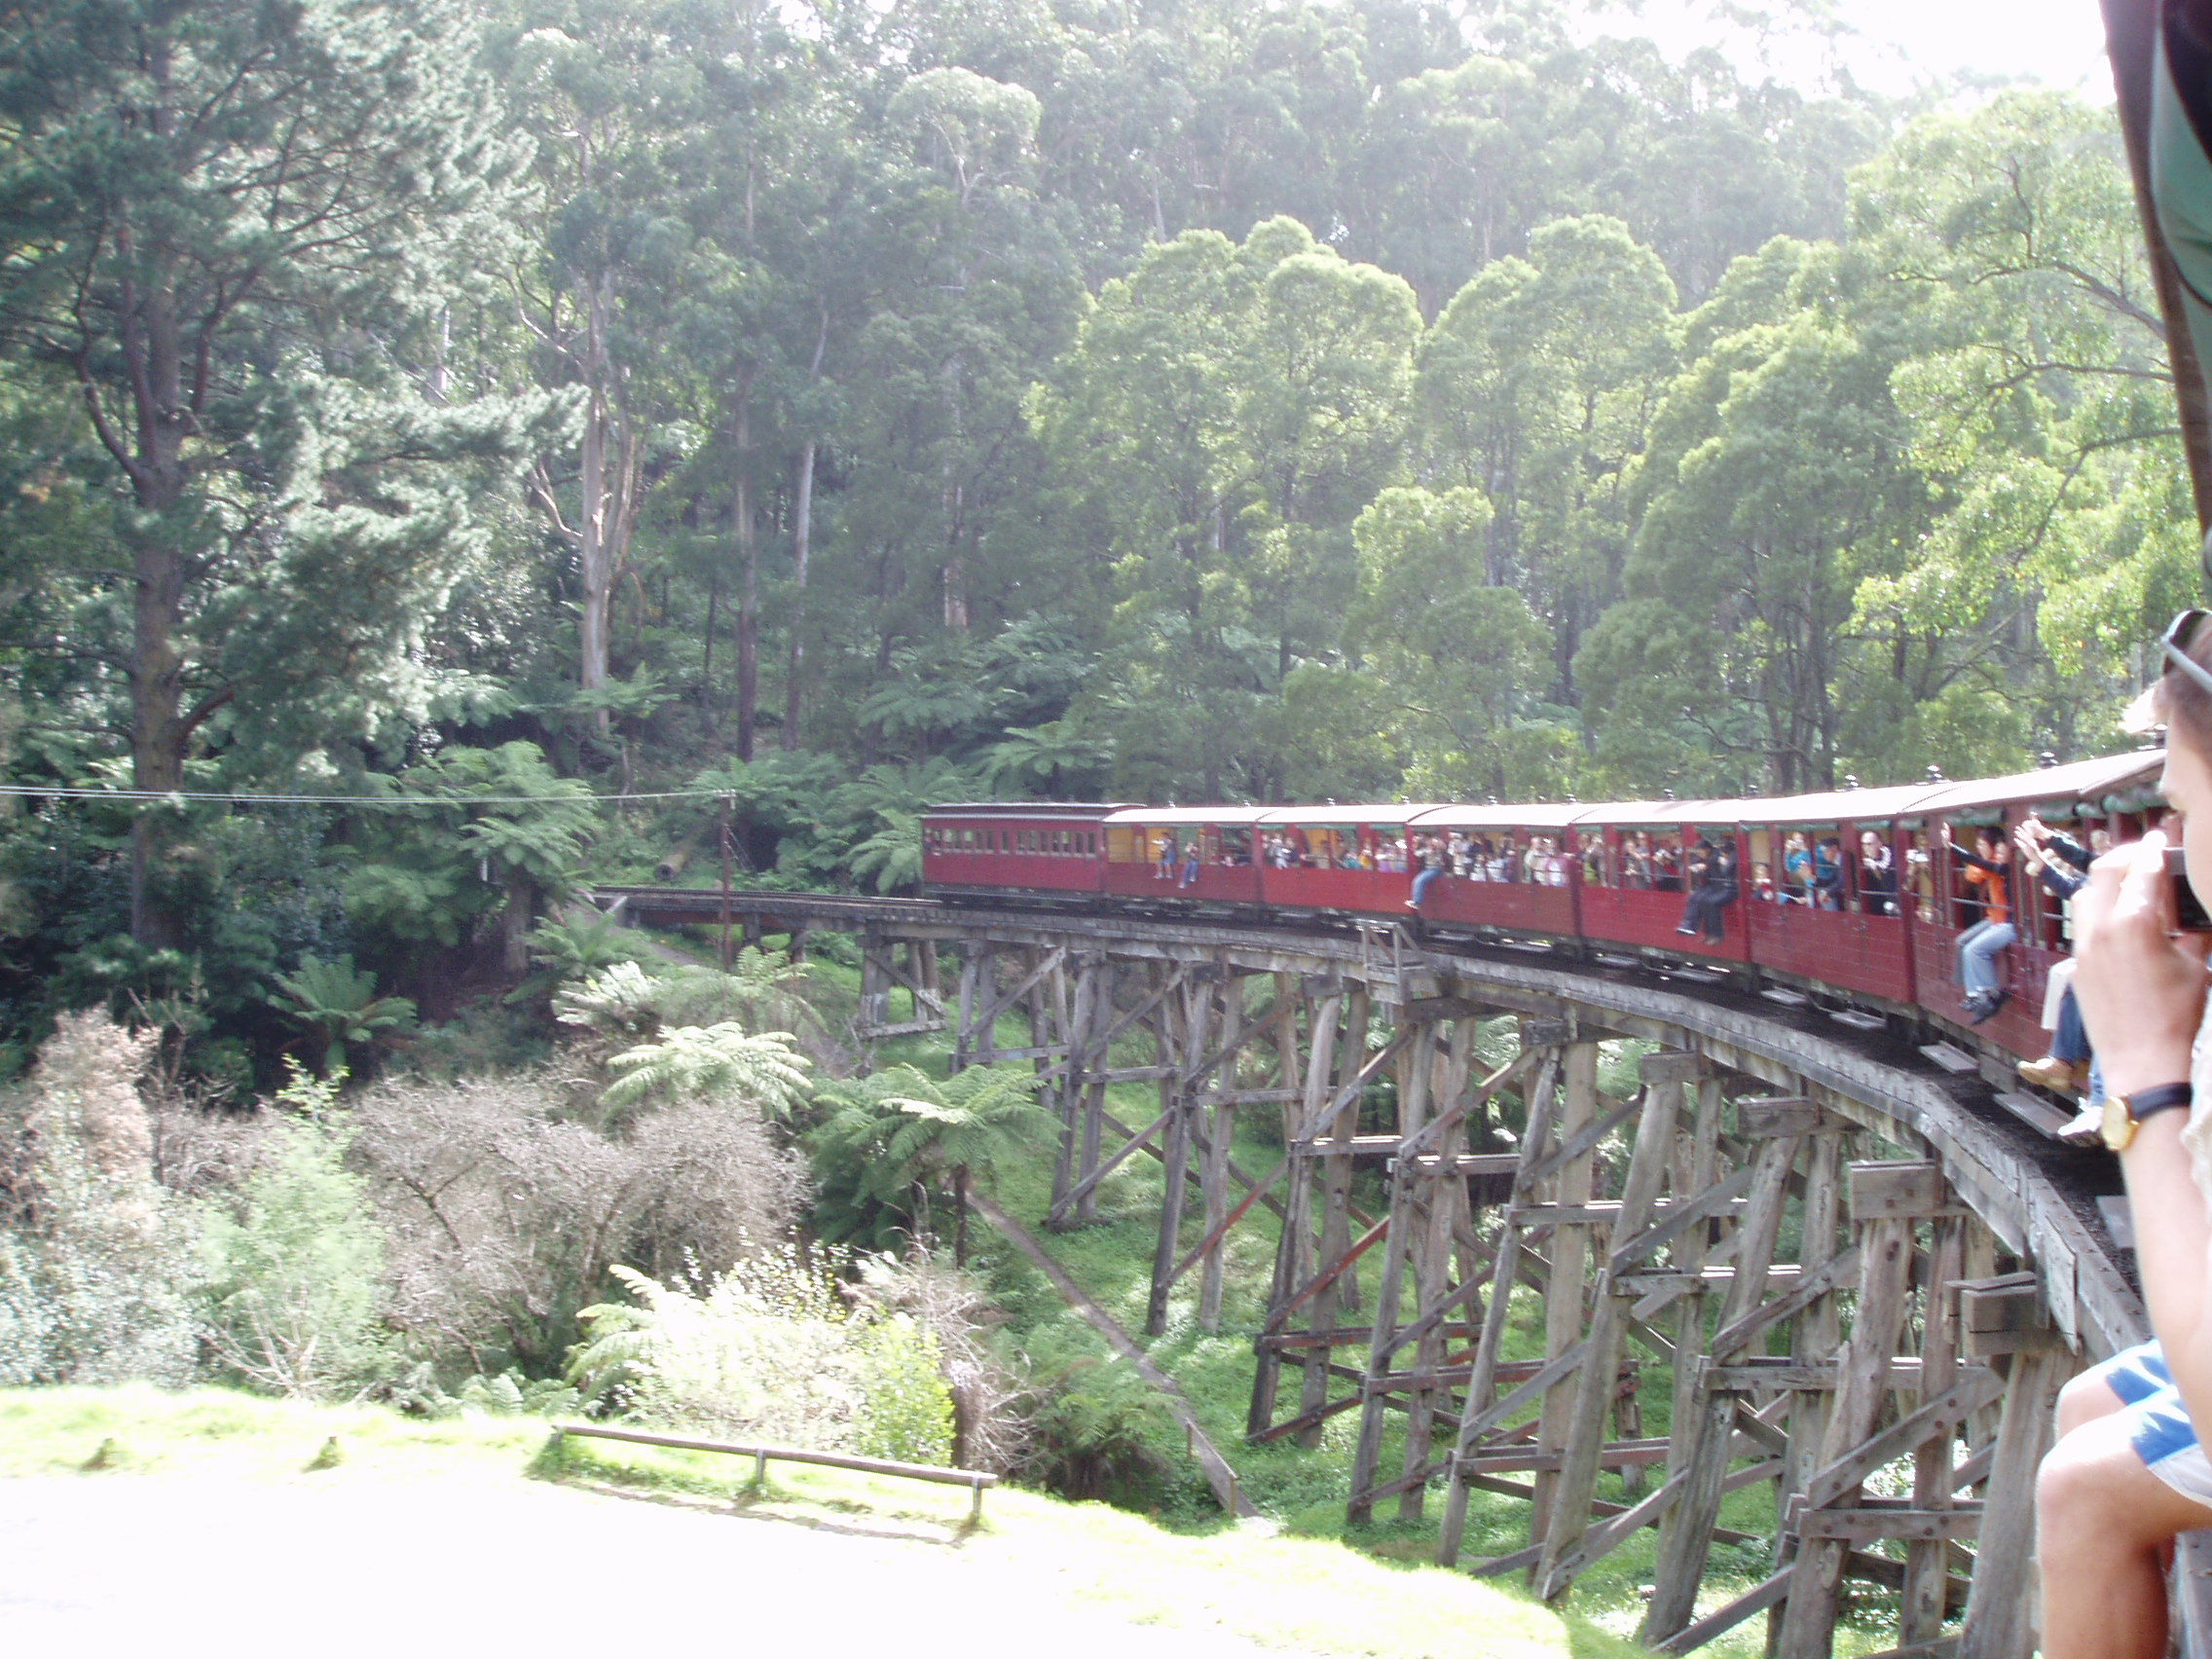 Crossing one of the old timber bridges on Puffing Billy.